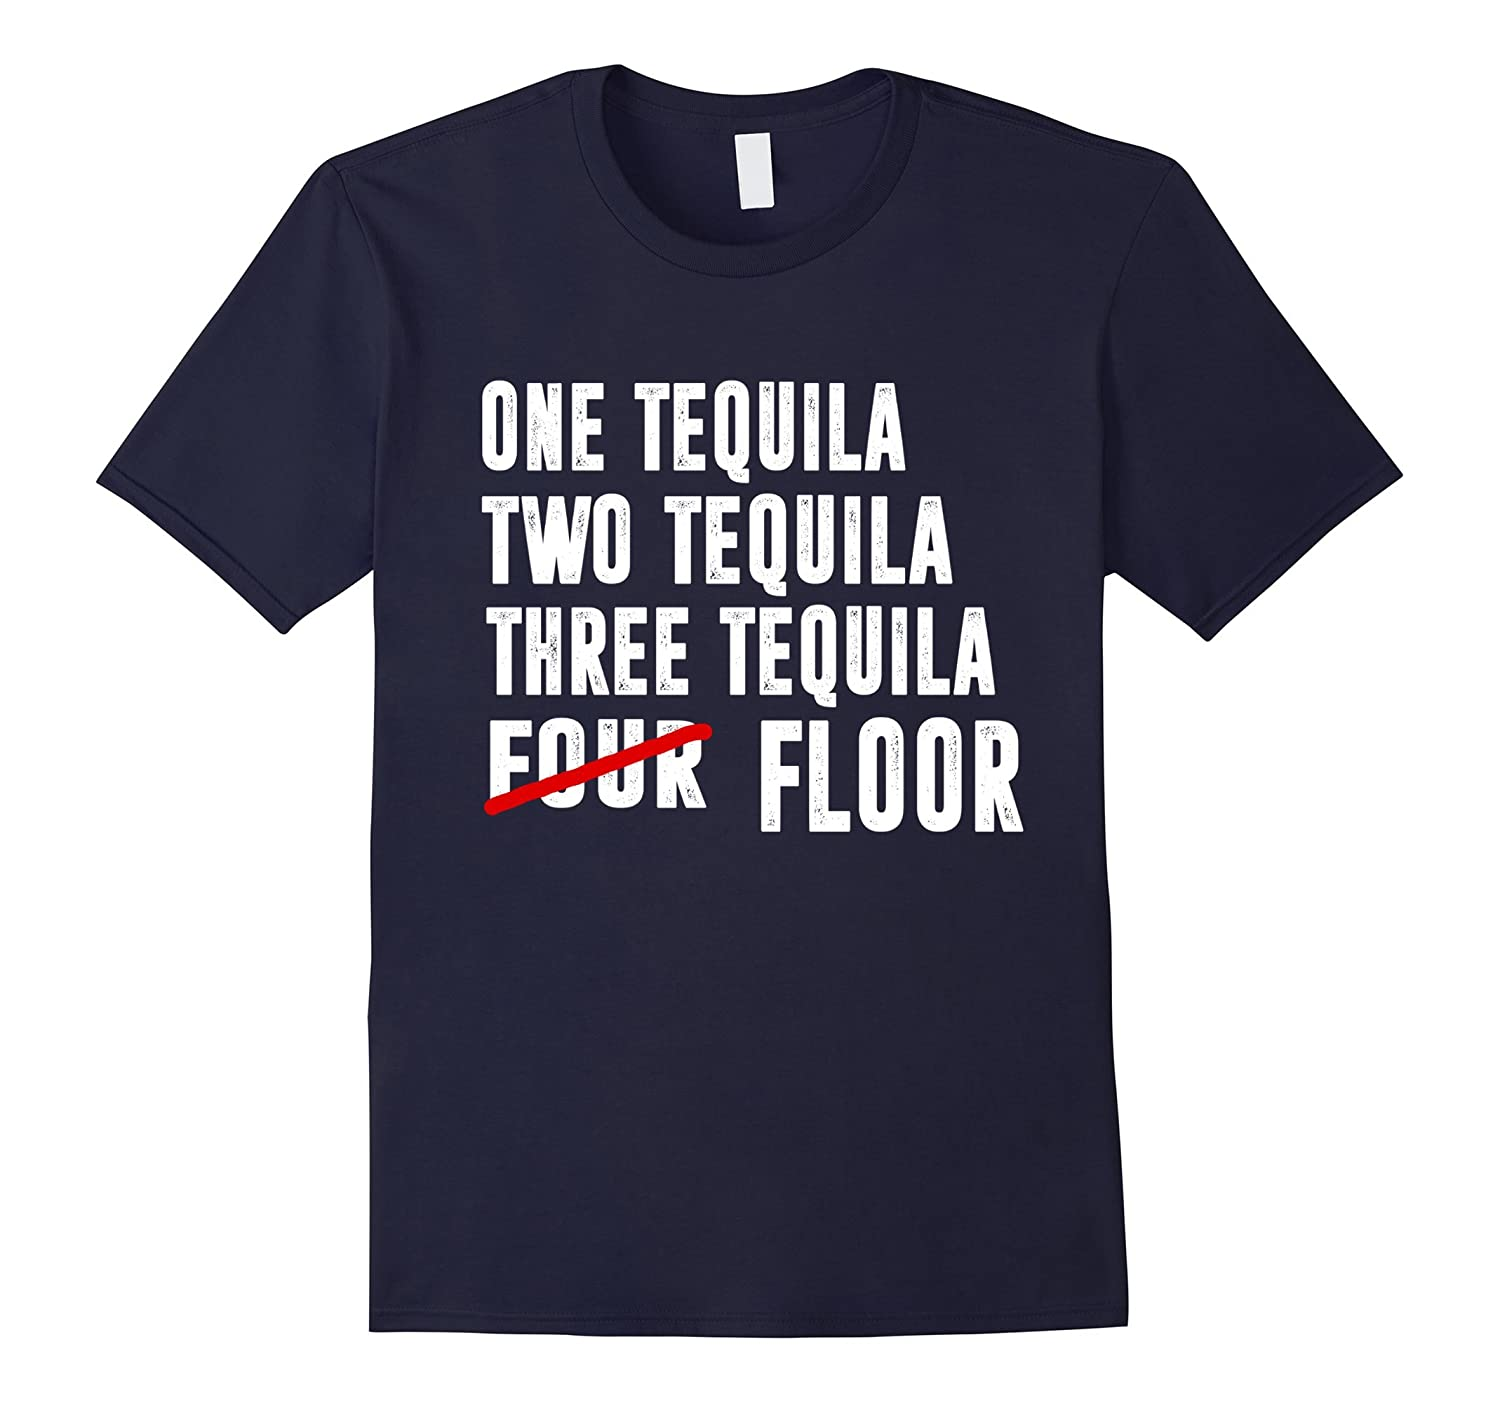 One tequila two tequila three tequila four floor shirt-Vaci